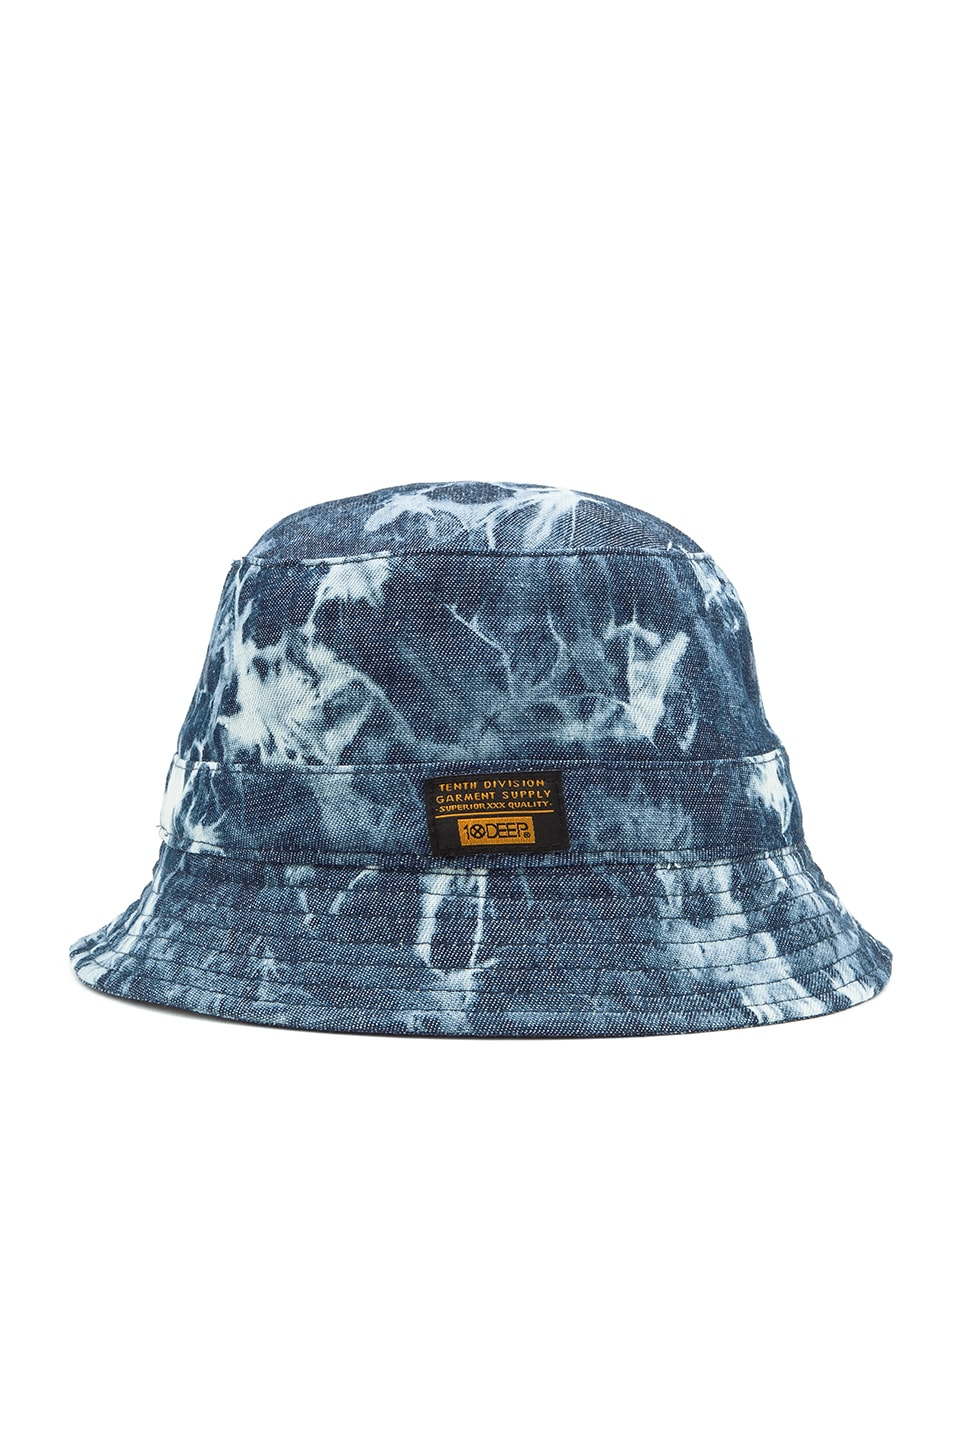 261b385f8ccc 10 Deep Thompson s Bucket Hat in Blue Tie Dye